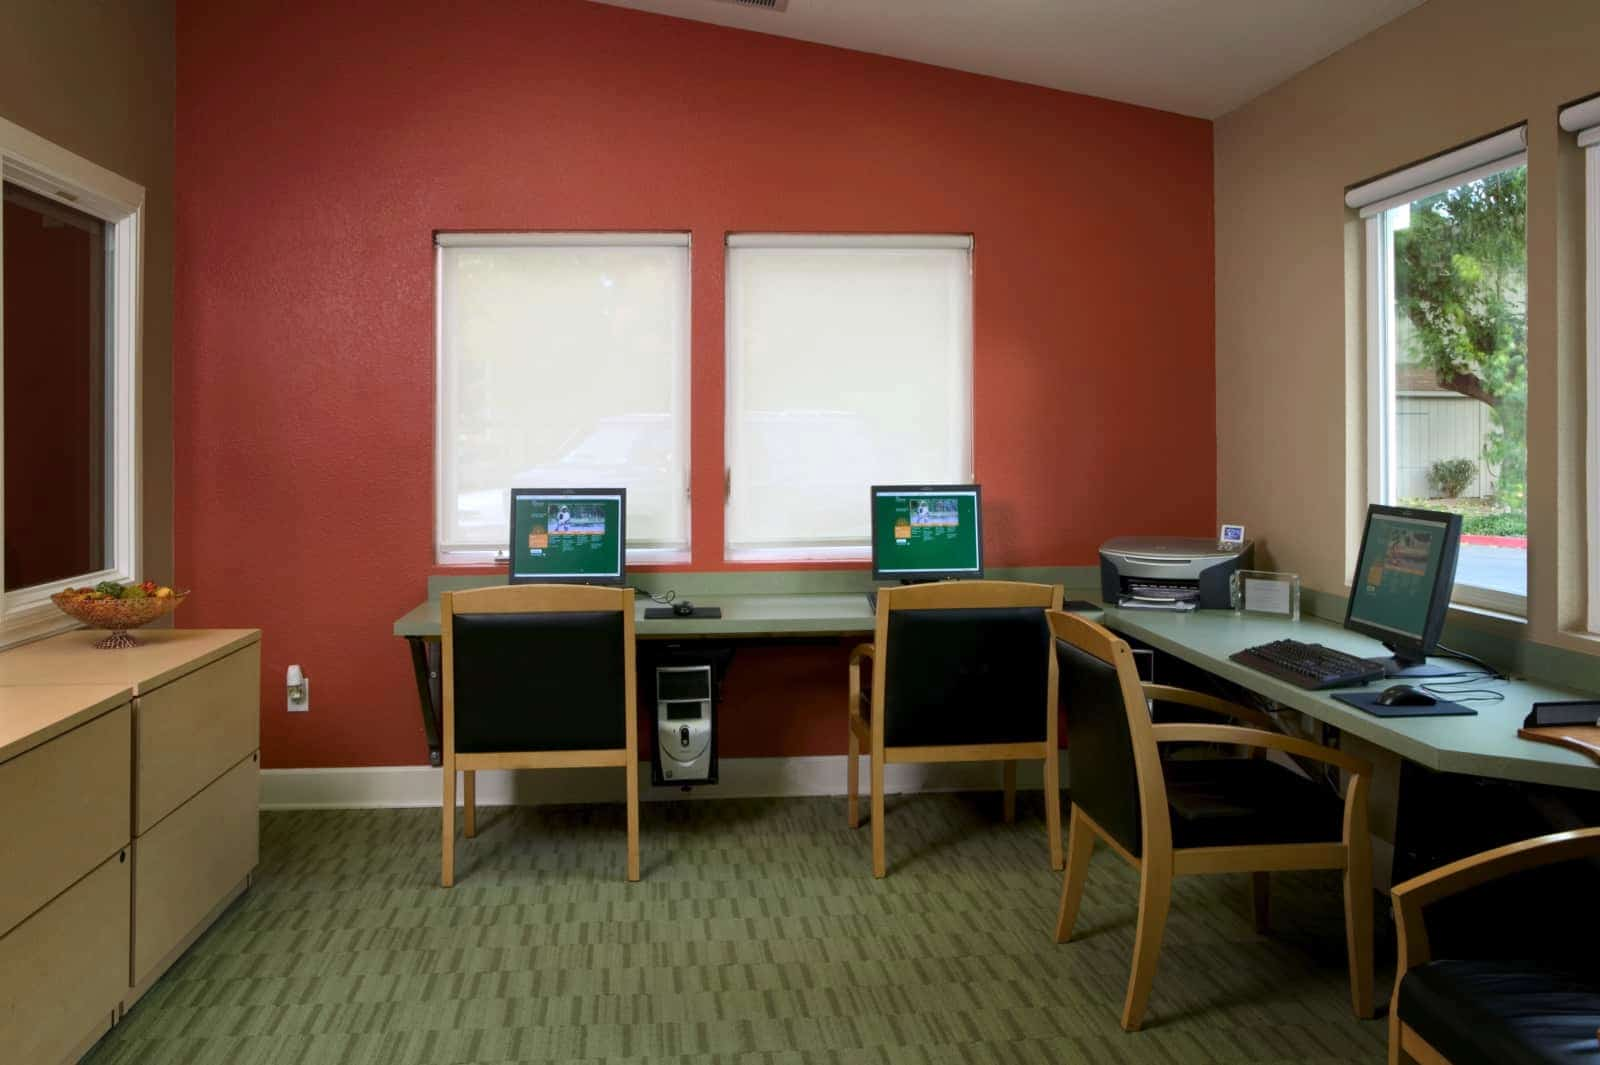 View of 3 computer stations and a printer in a business center.